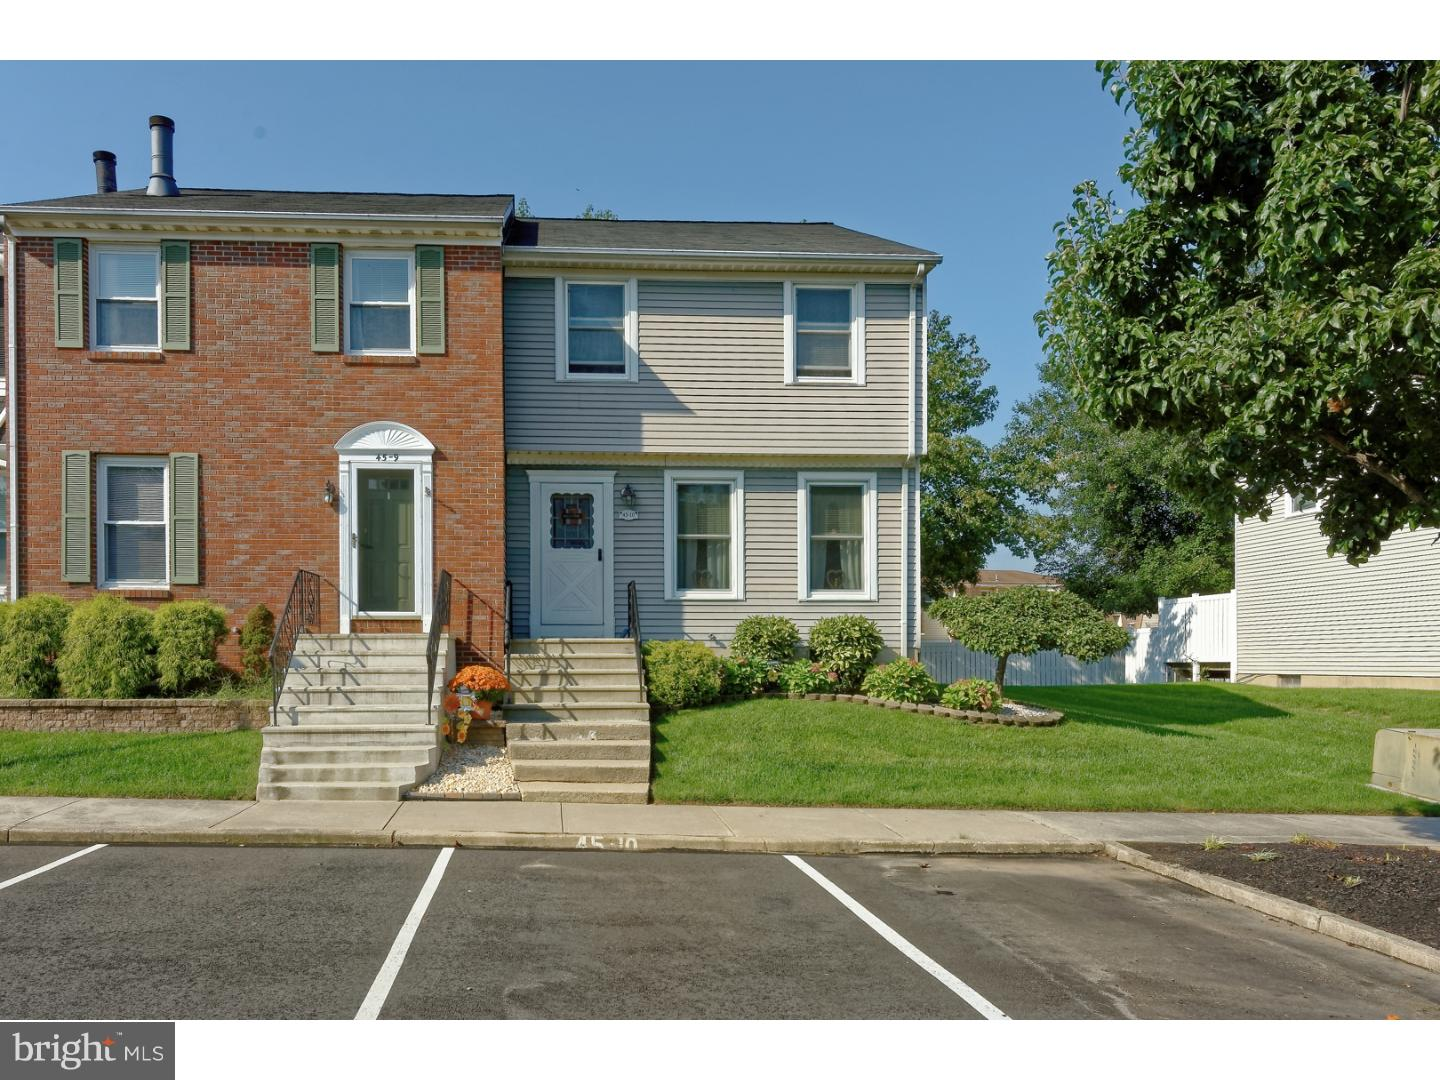 45-10 CARRIAGE STOP PLACE, FLORENCE, NJ 08518